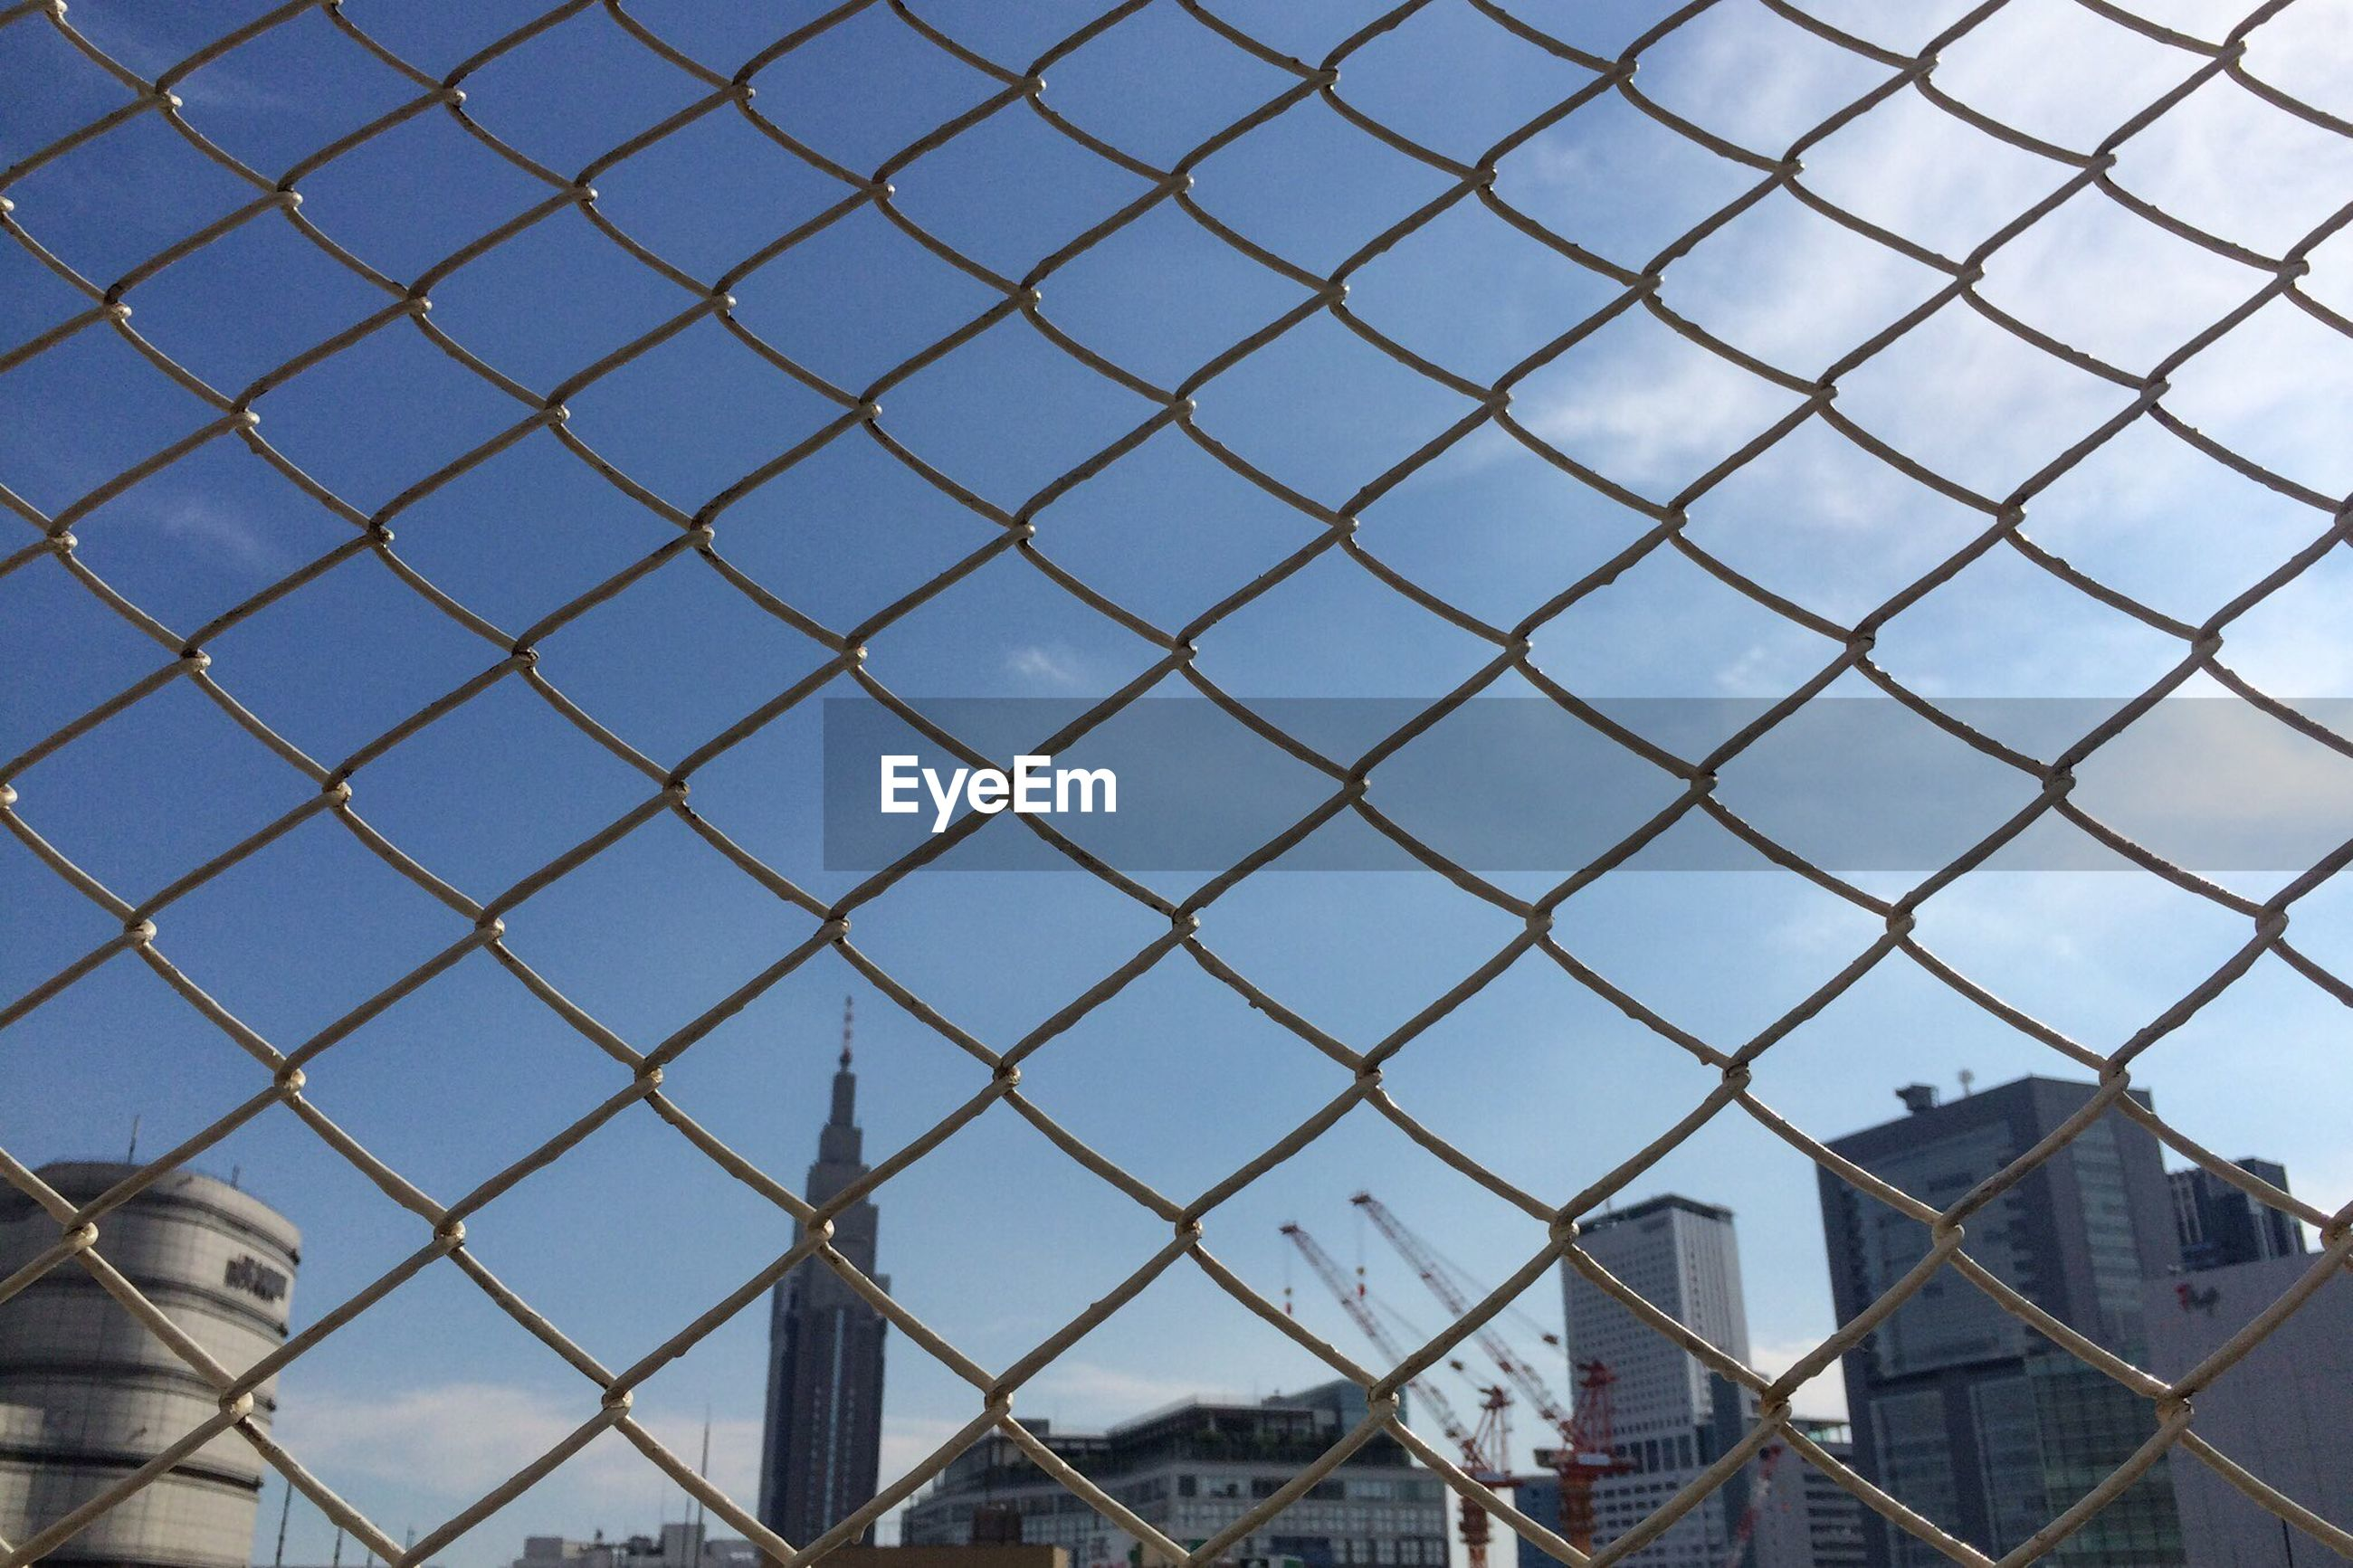 View of city buildings seen through wire mesh